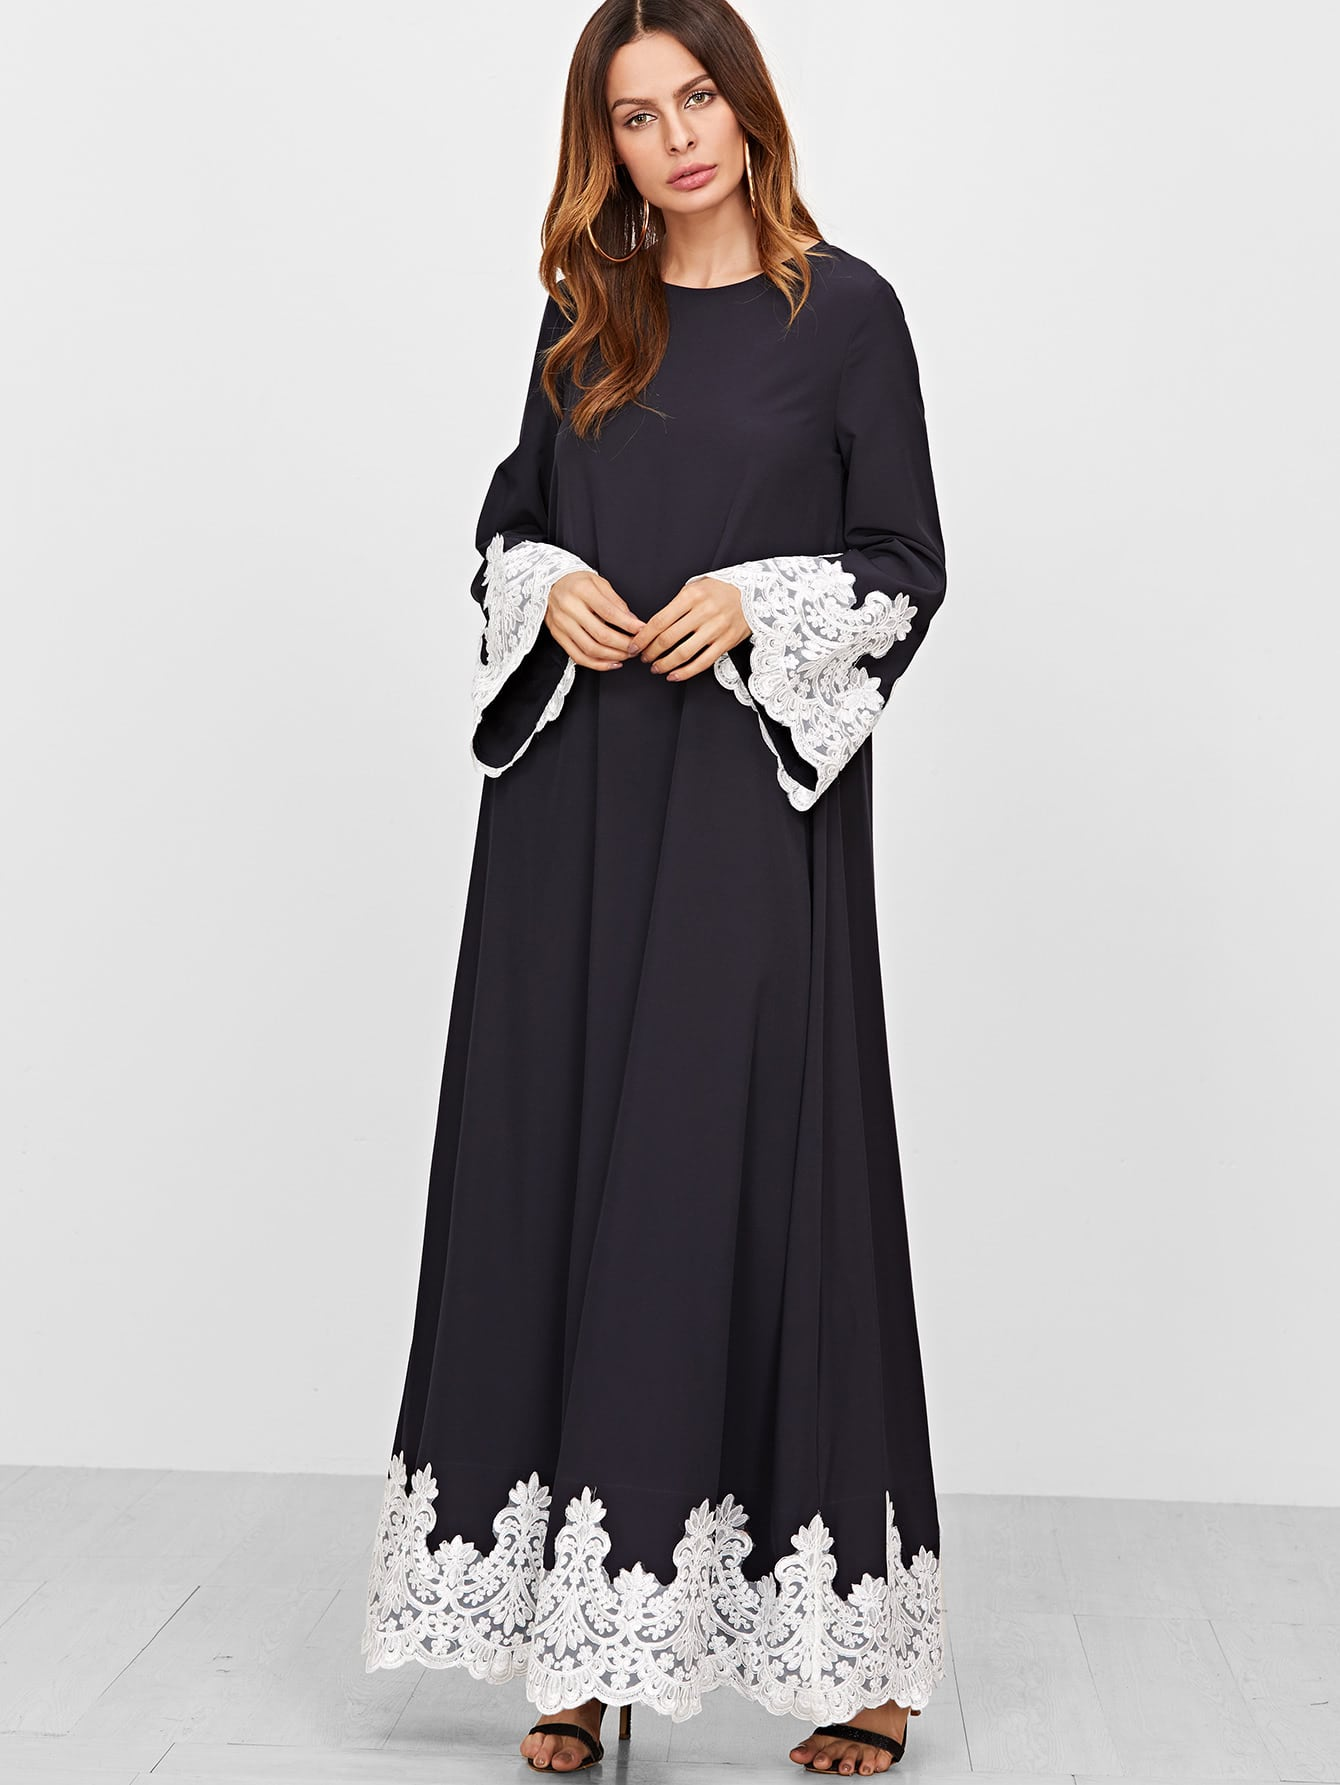 Contrast Embroidered Lace Trim Tent Dress maison jules new junior s small s pink combo lace crepe contrast trim dress $89